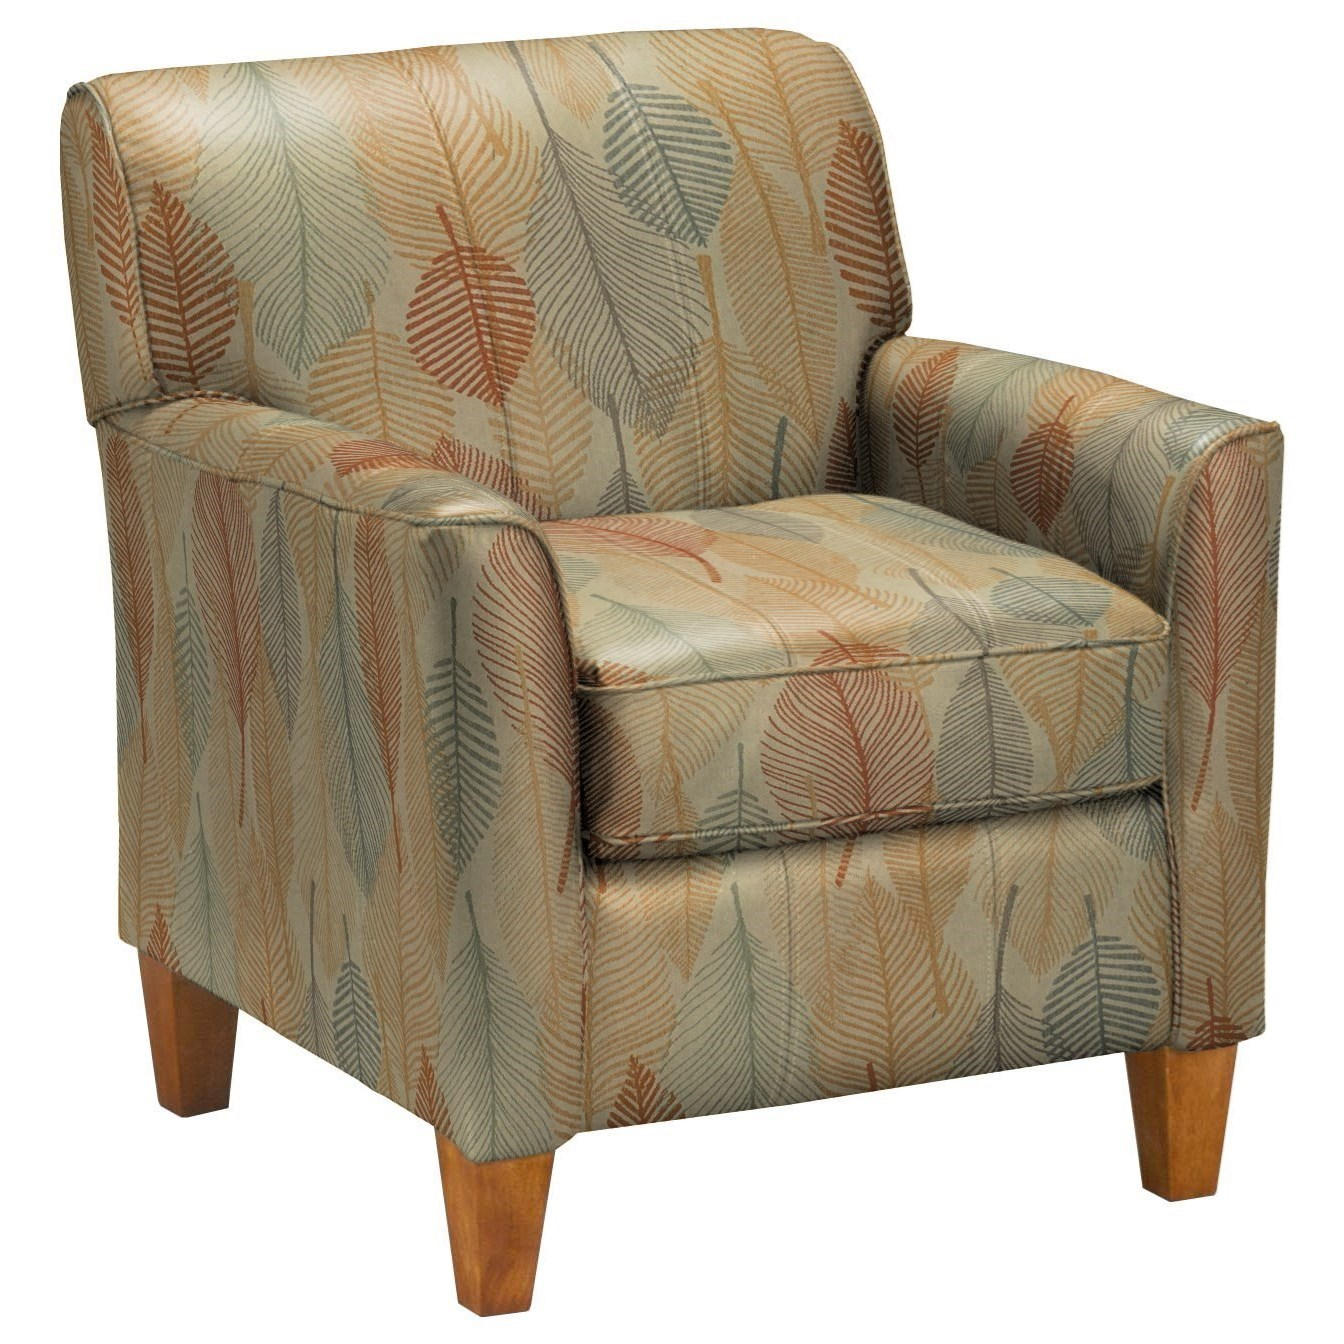 Best Home Furnishings Chairs - Club Risa Club Chair - Item Number: -1159276652-34914